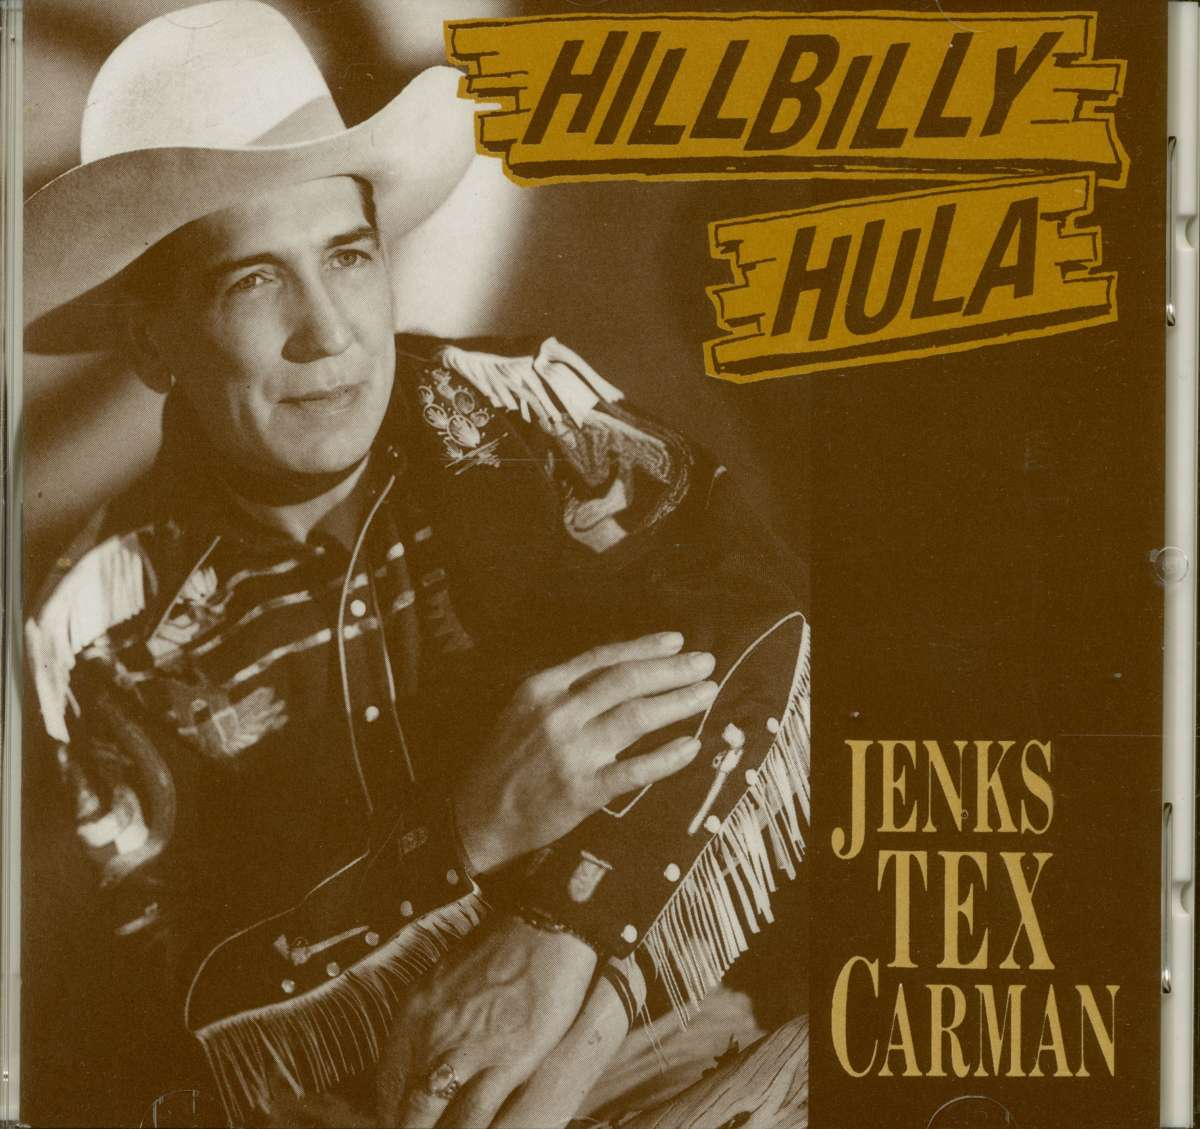 Jenks 'Tex' Carman  Hillbilly Hula